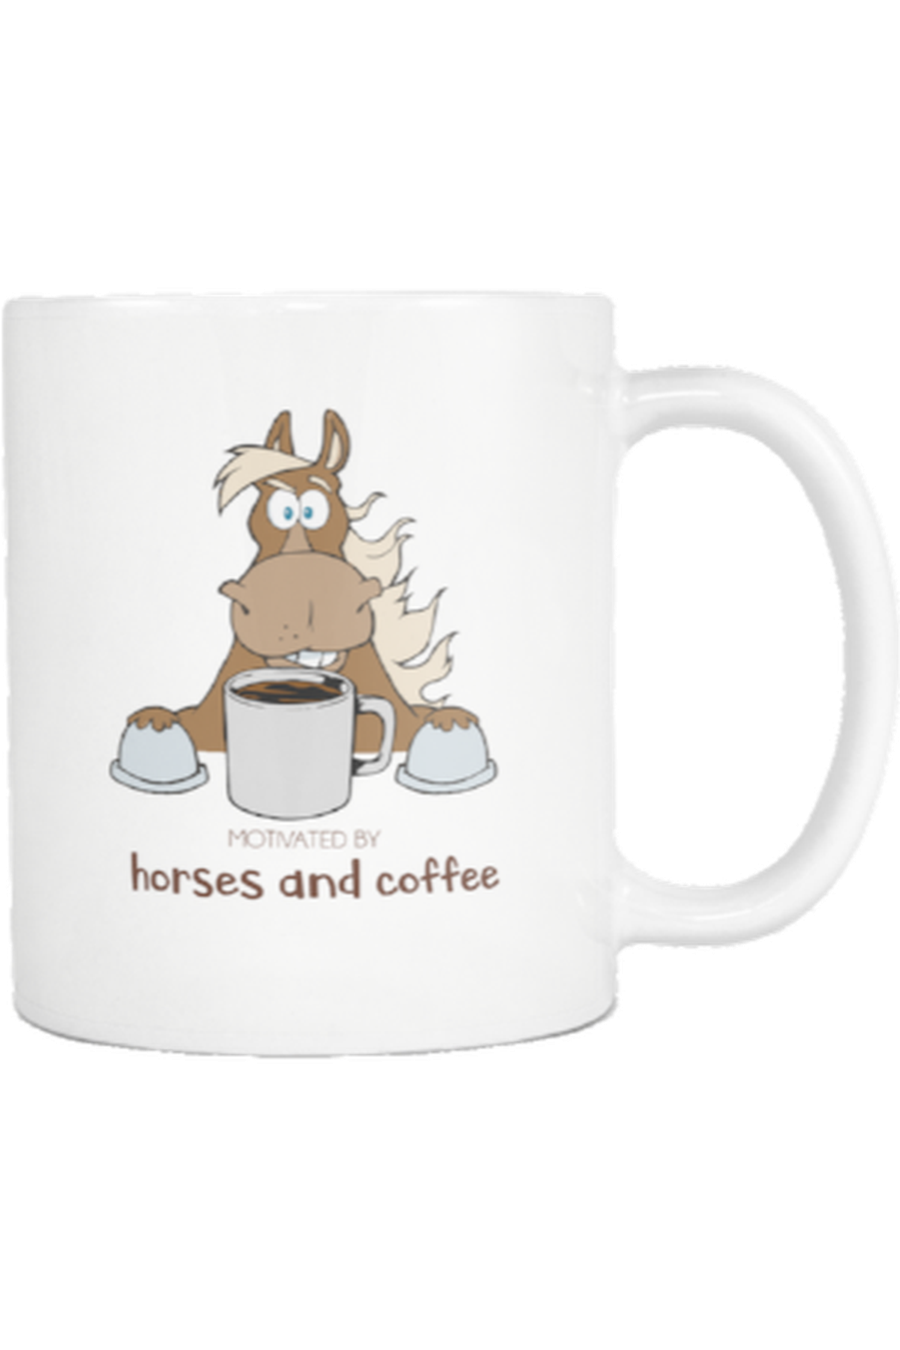 Motivated by Horses and Coffee - Mug